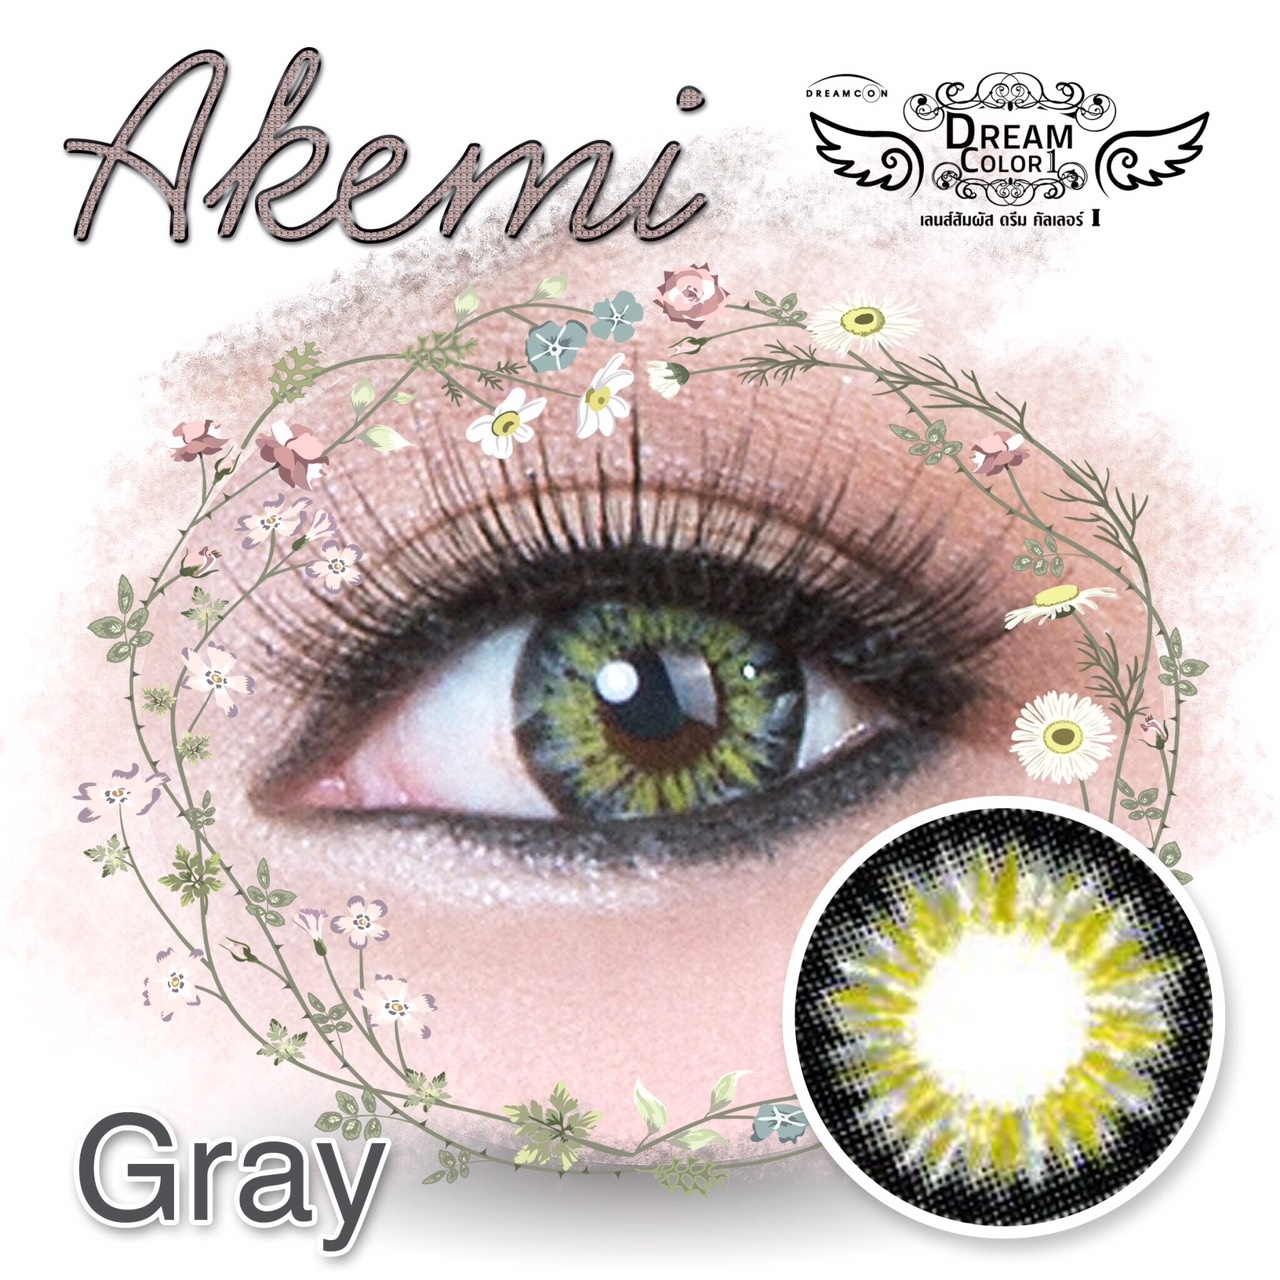 dreamcolor-akemi-gray-2